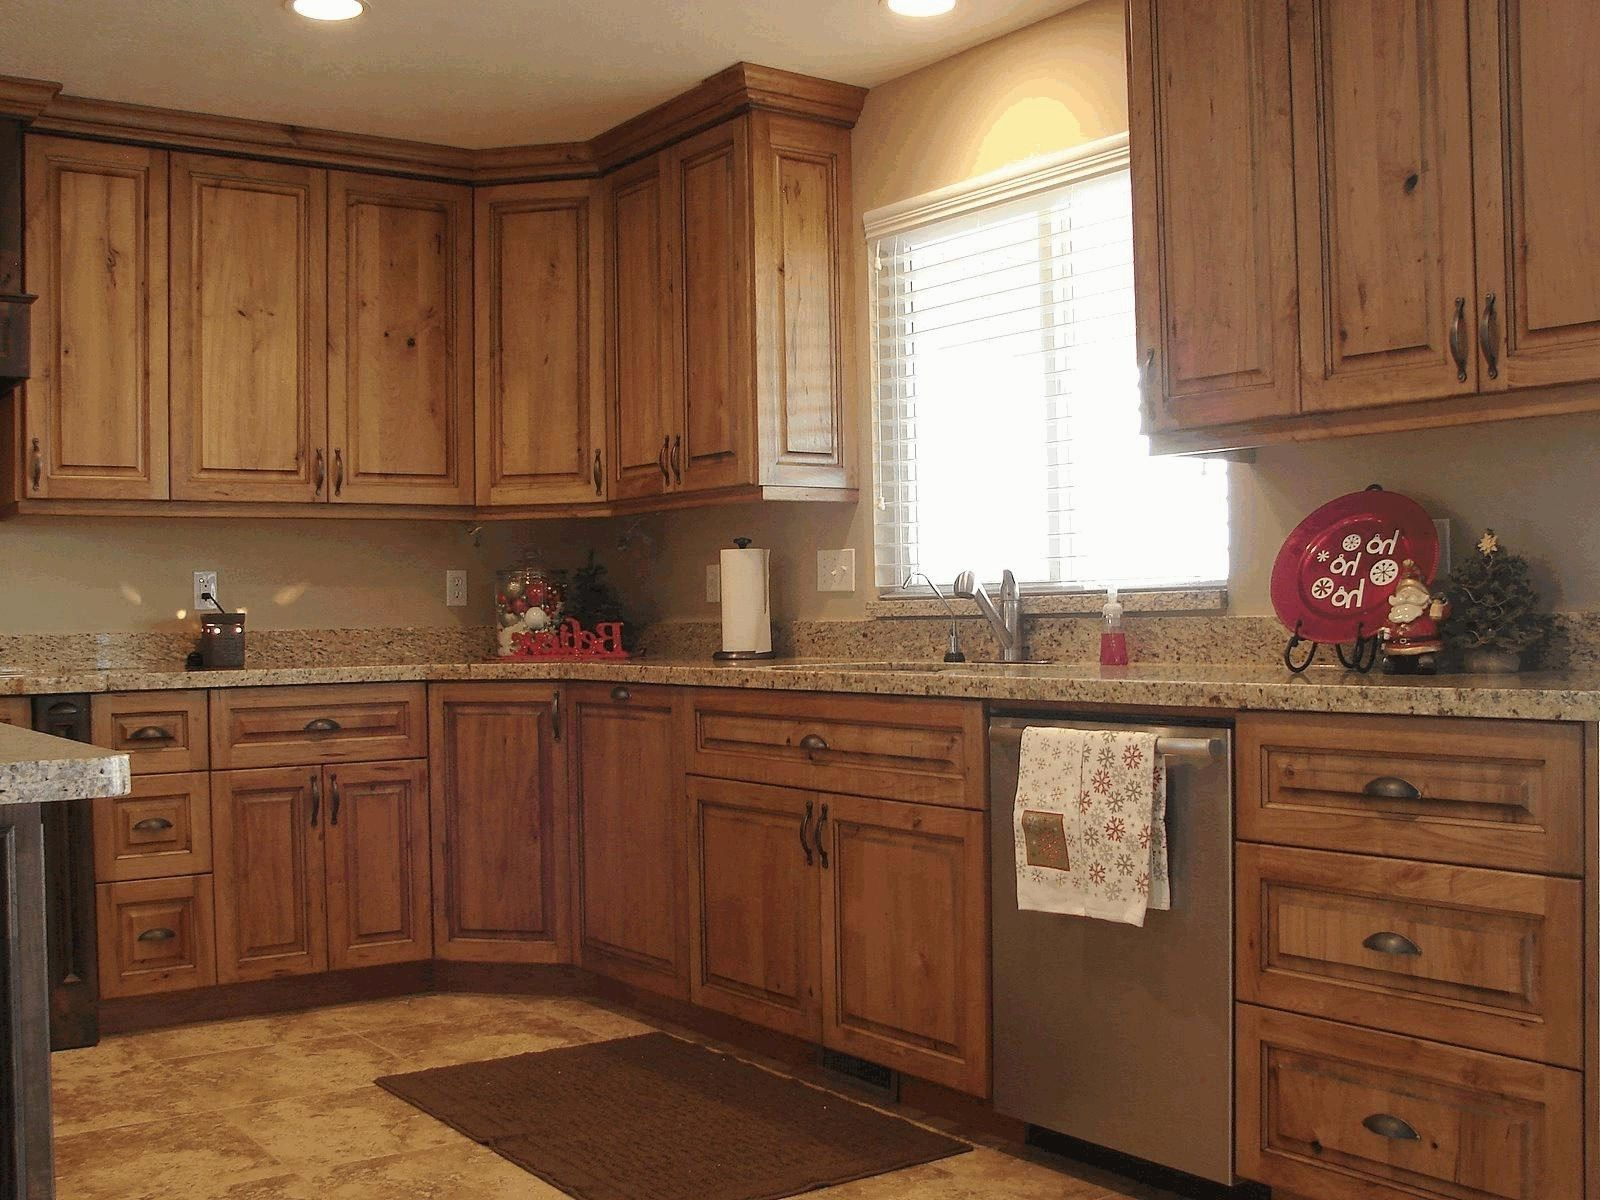 25 Elegant Knotty Pine Kitchen Cabinets Pine Kitchen Cabinets Wooden Kitchen Cabinets Used Kitchen Cabinets